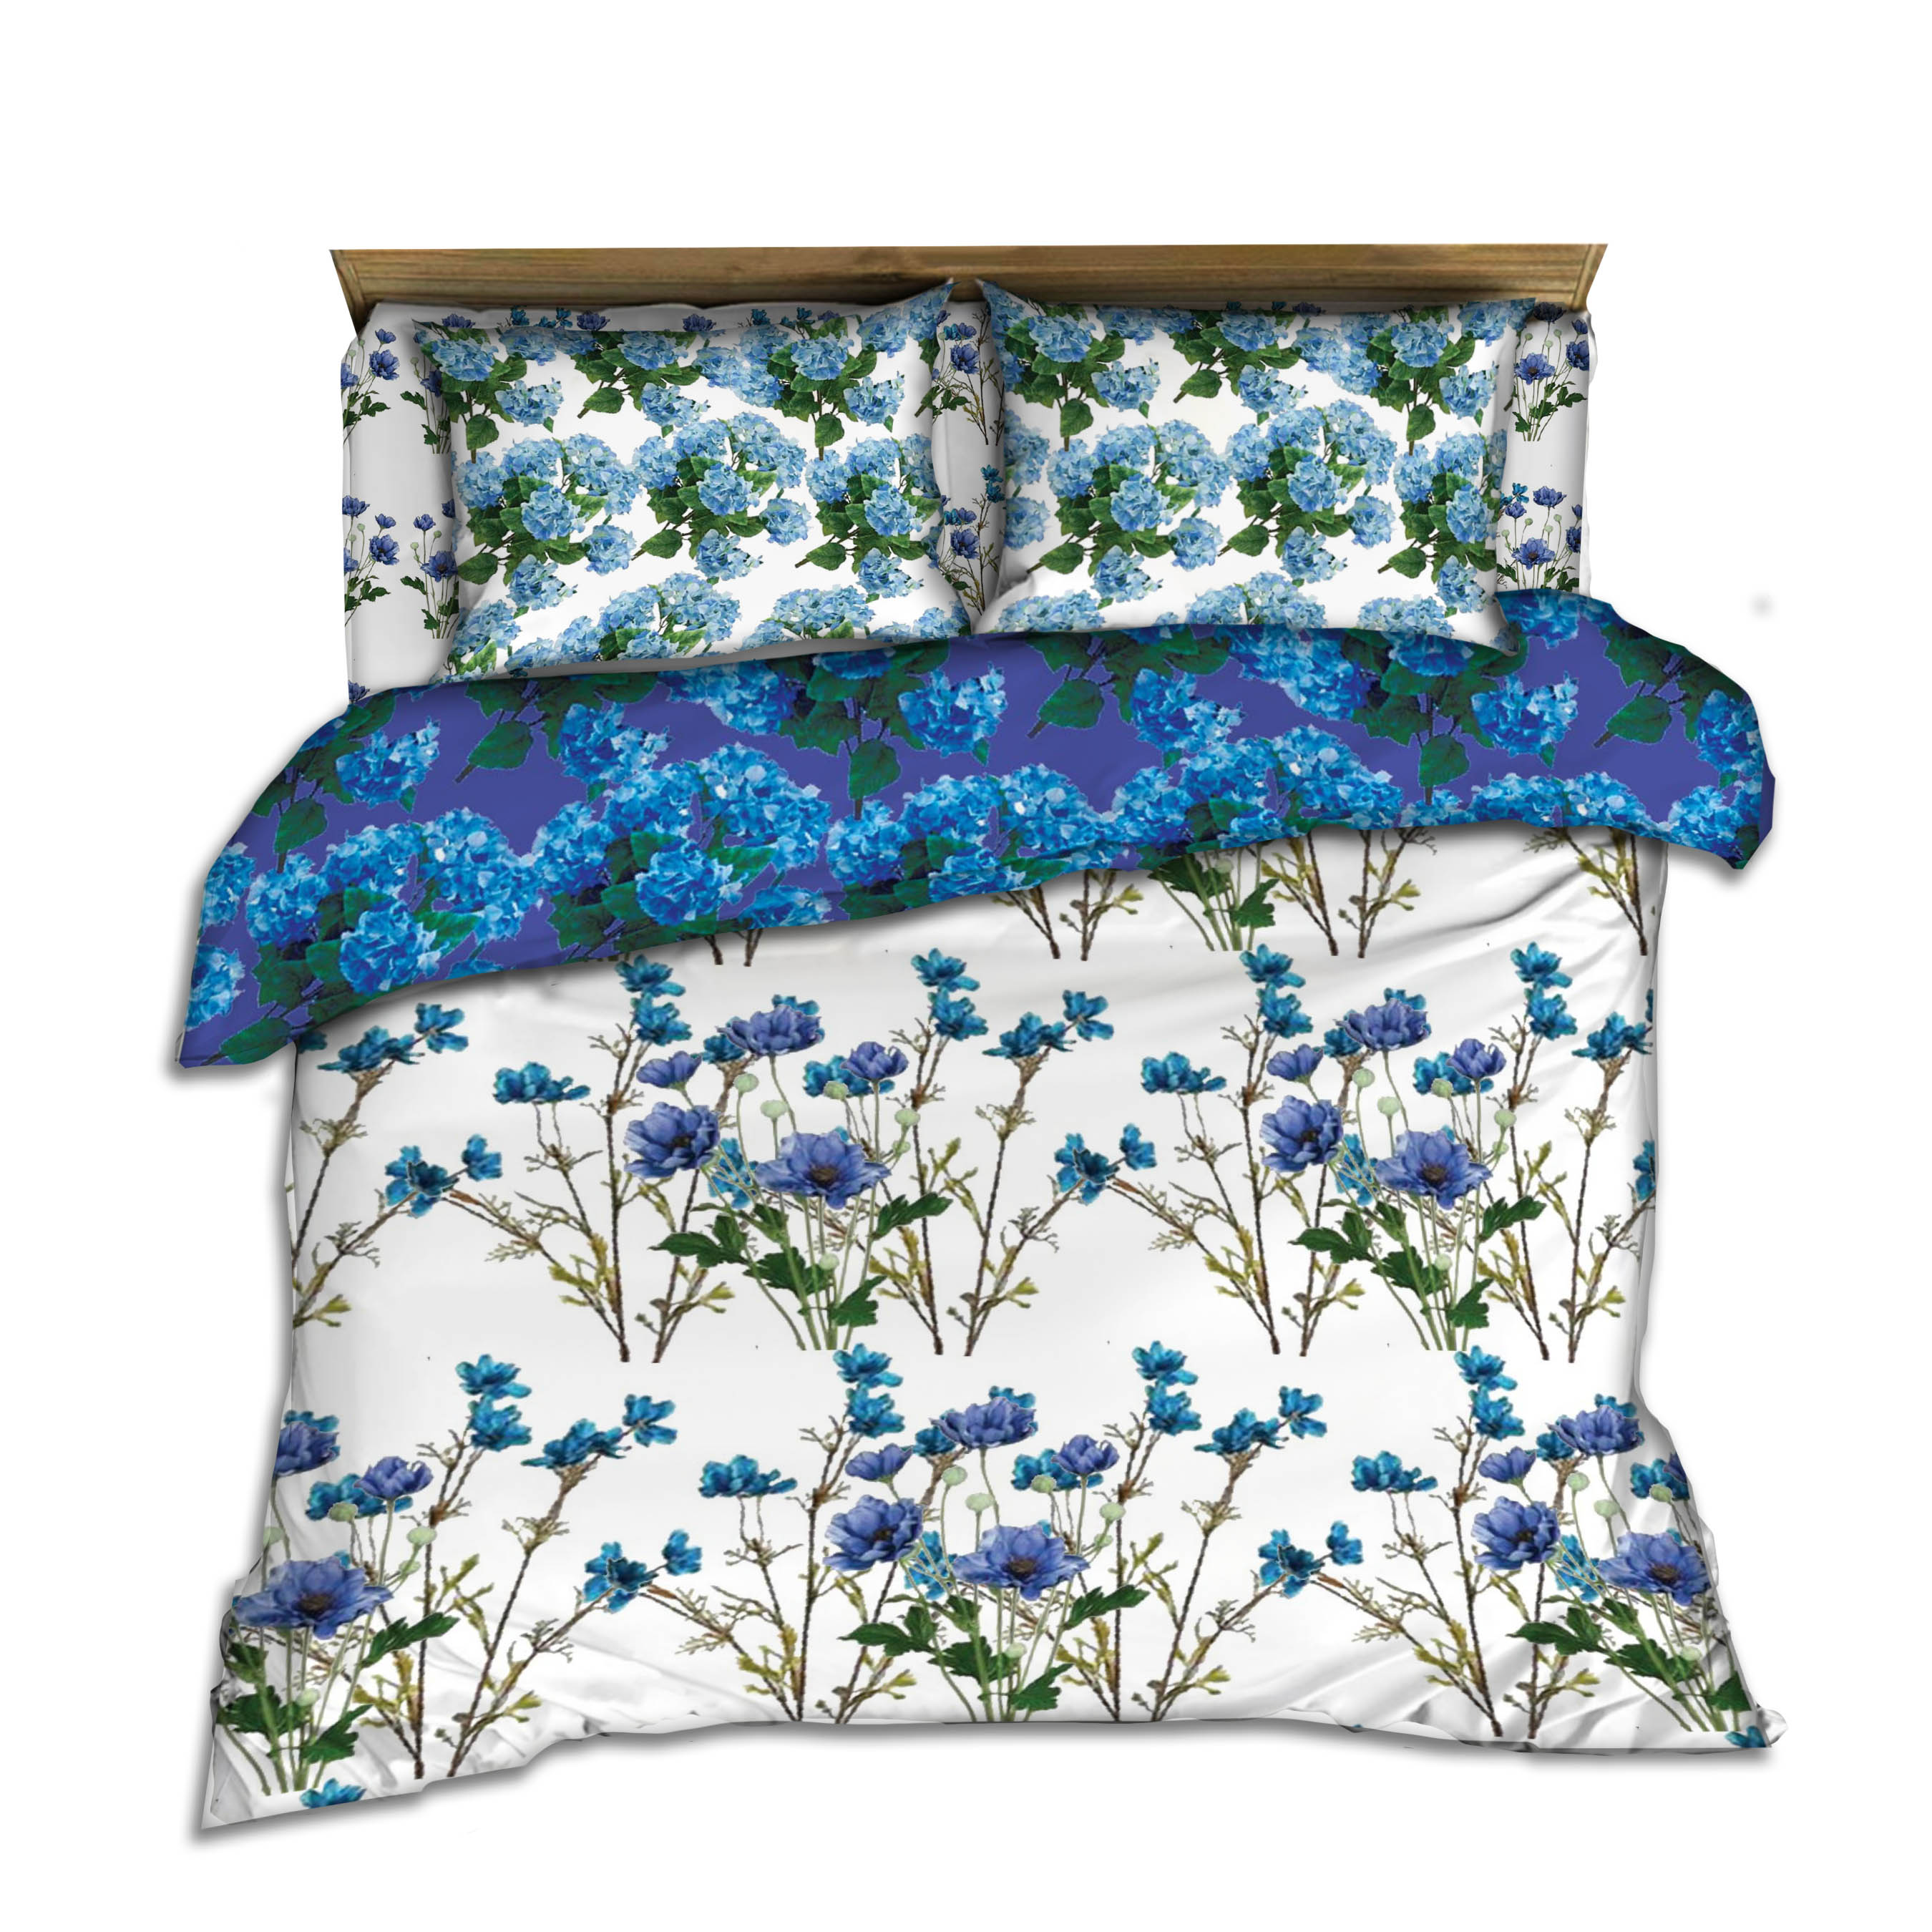 Blue wildflower bedding